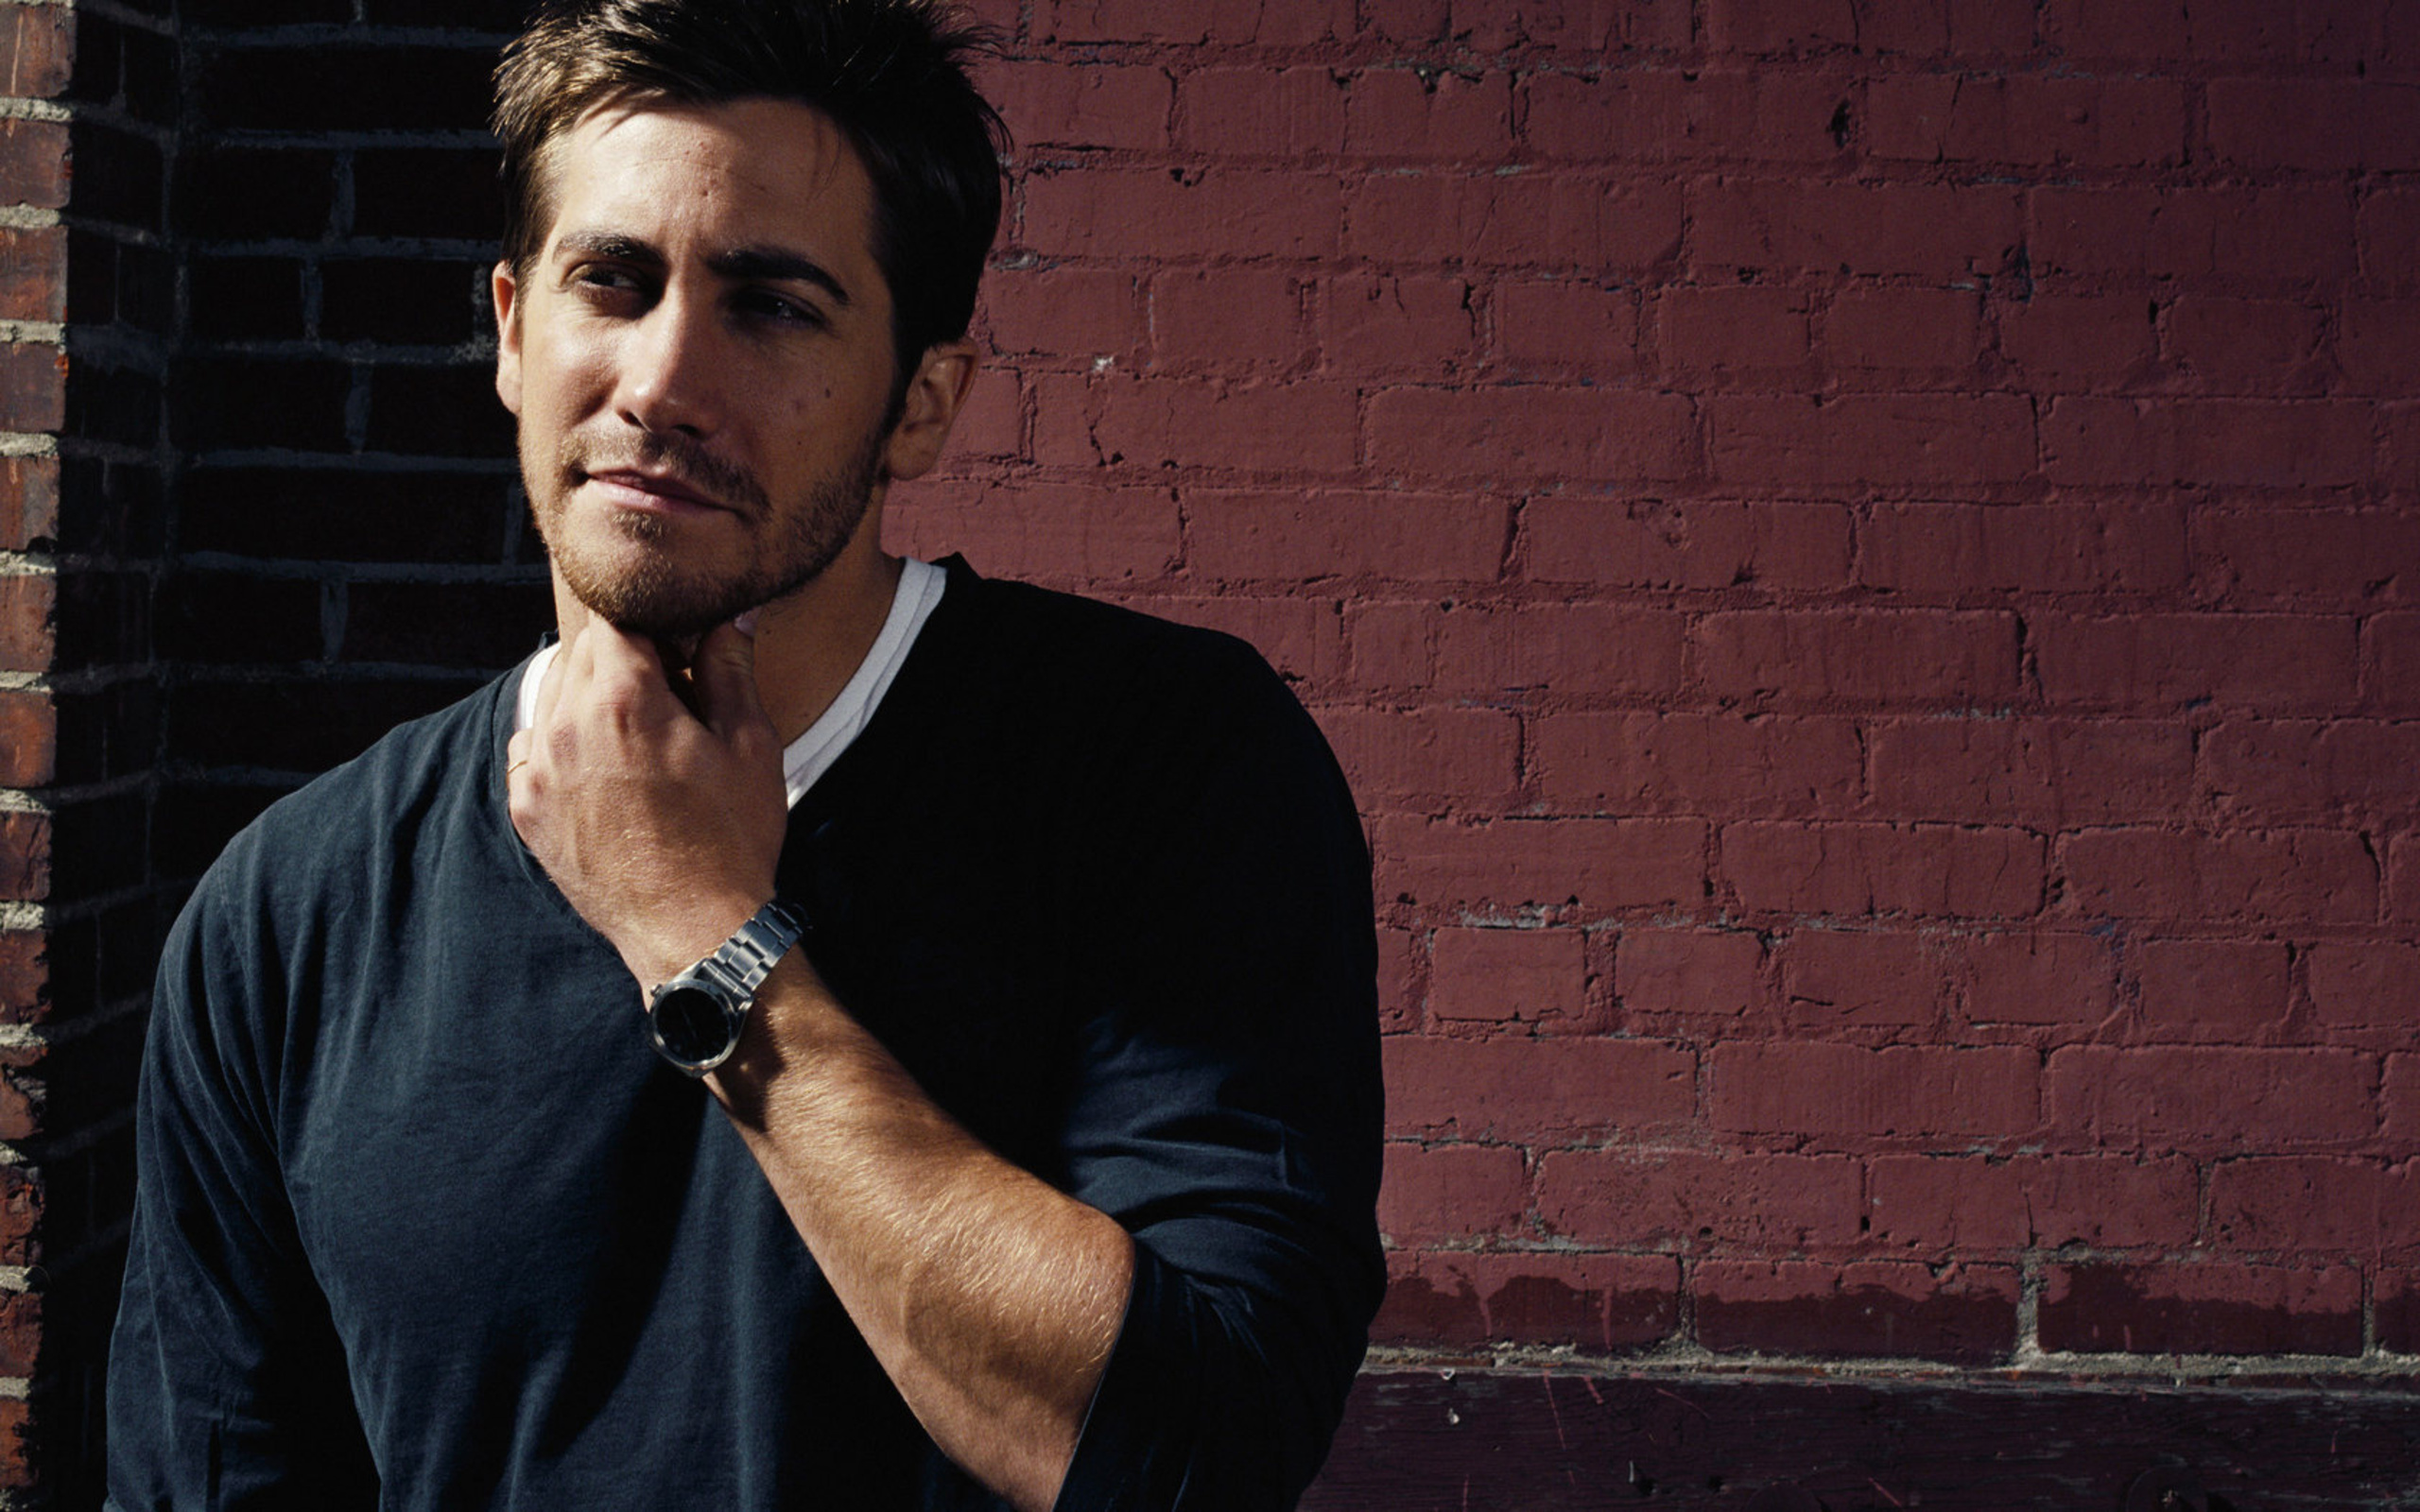 Jake Gyllenhaal Hd Images Wallpaper HD Celebrities 4K Wallpapers 2560x1600